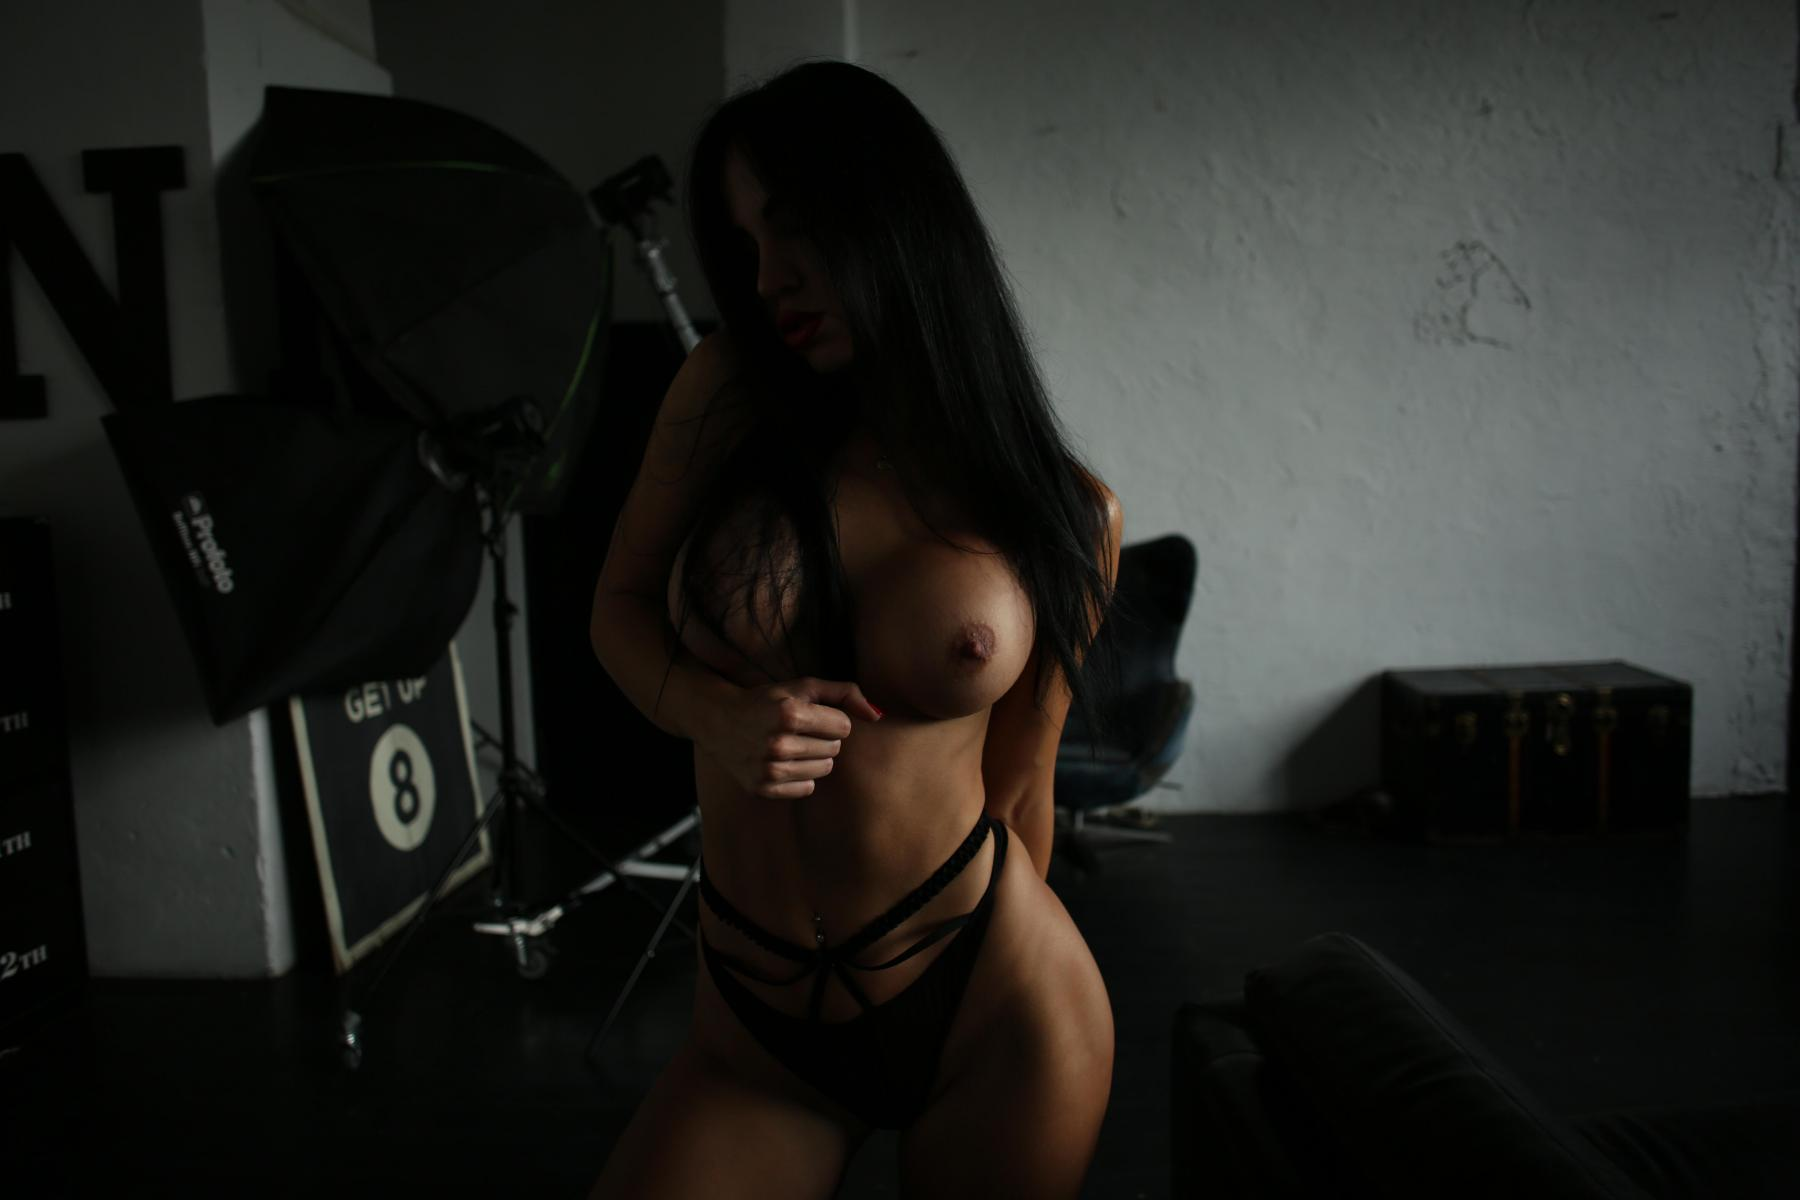 Yana Sexy Brunette's Tits Porn OnlyFans Leaked Nudes 29